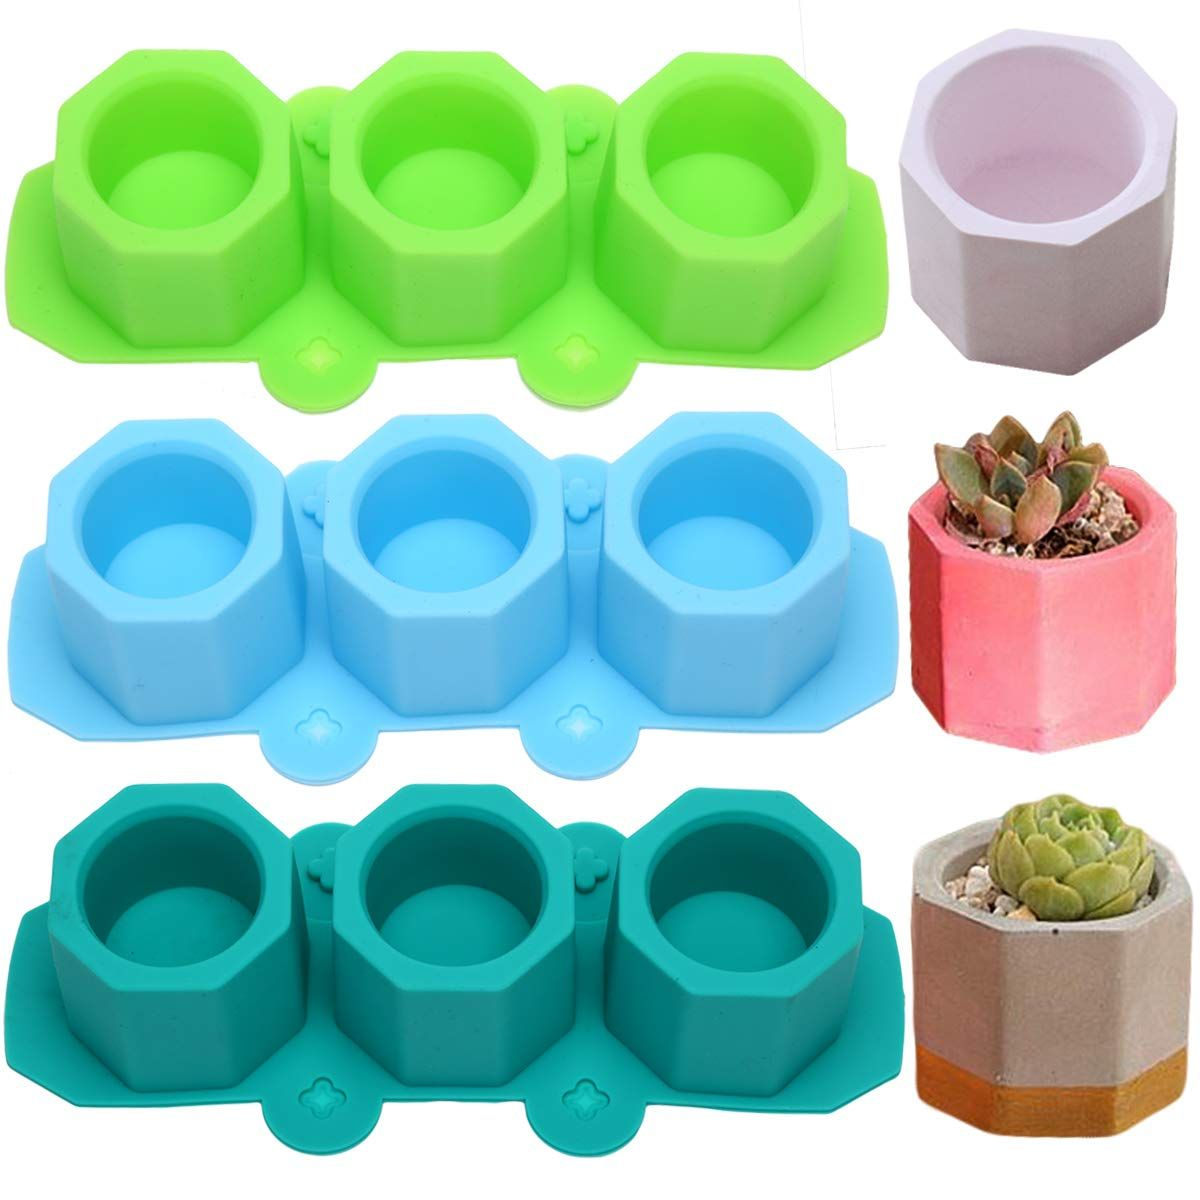 MeiMeiDa 3 Pack Mini Octagon Flower Pot Silicone Molds